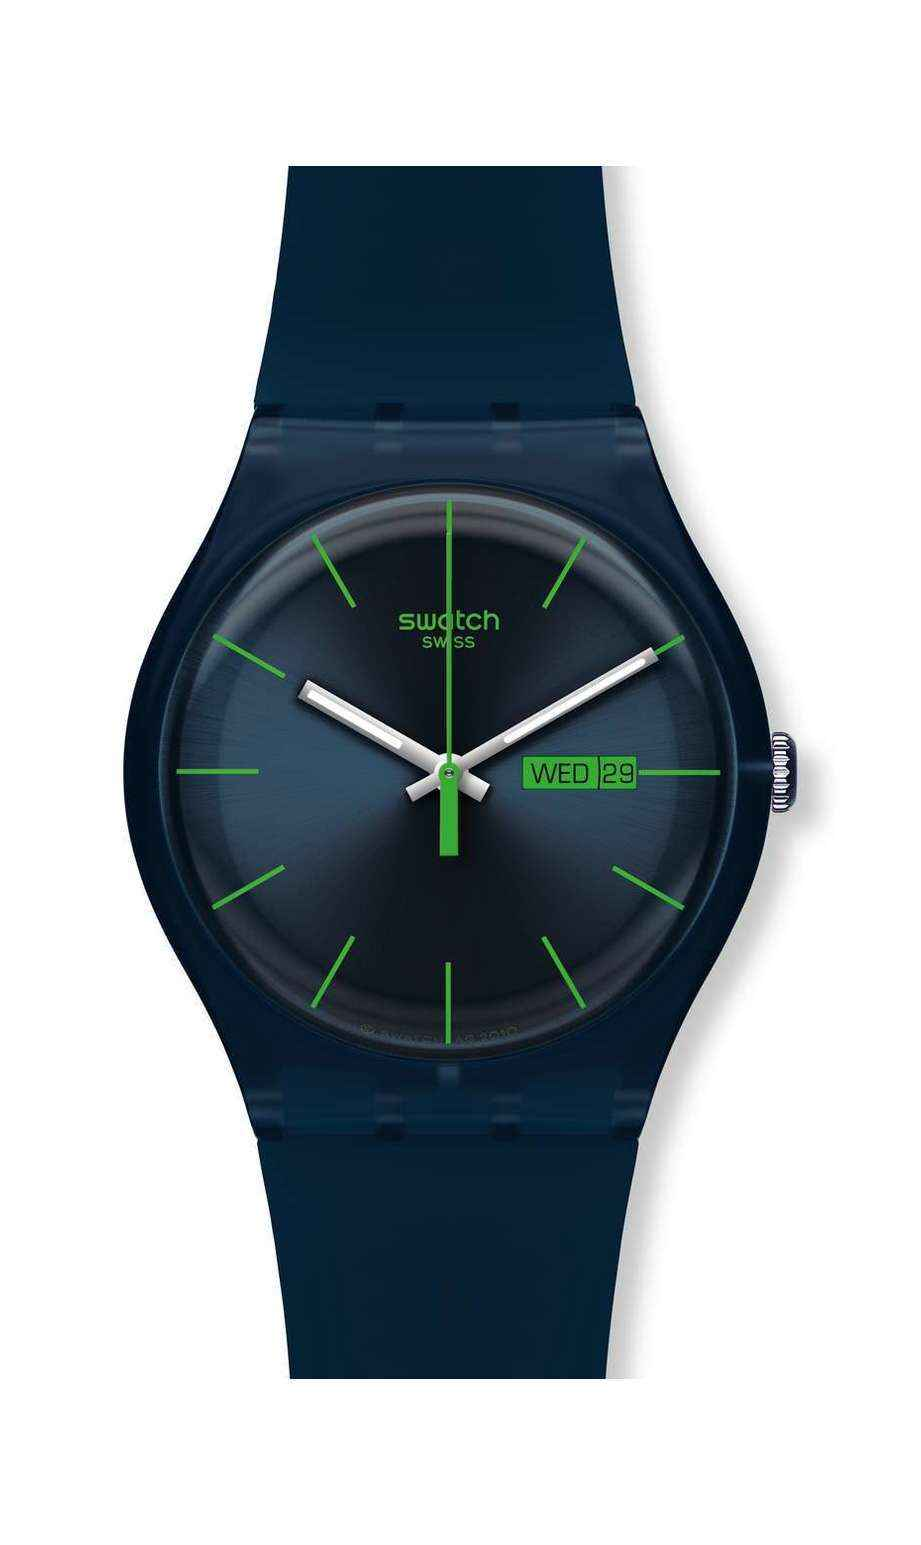 Swatch - BLUE REBEL - 1